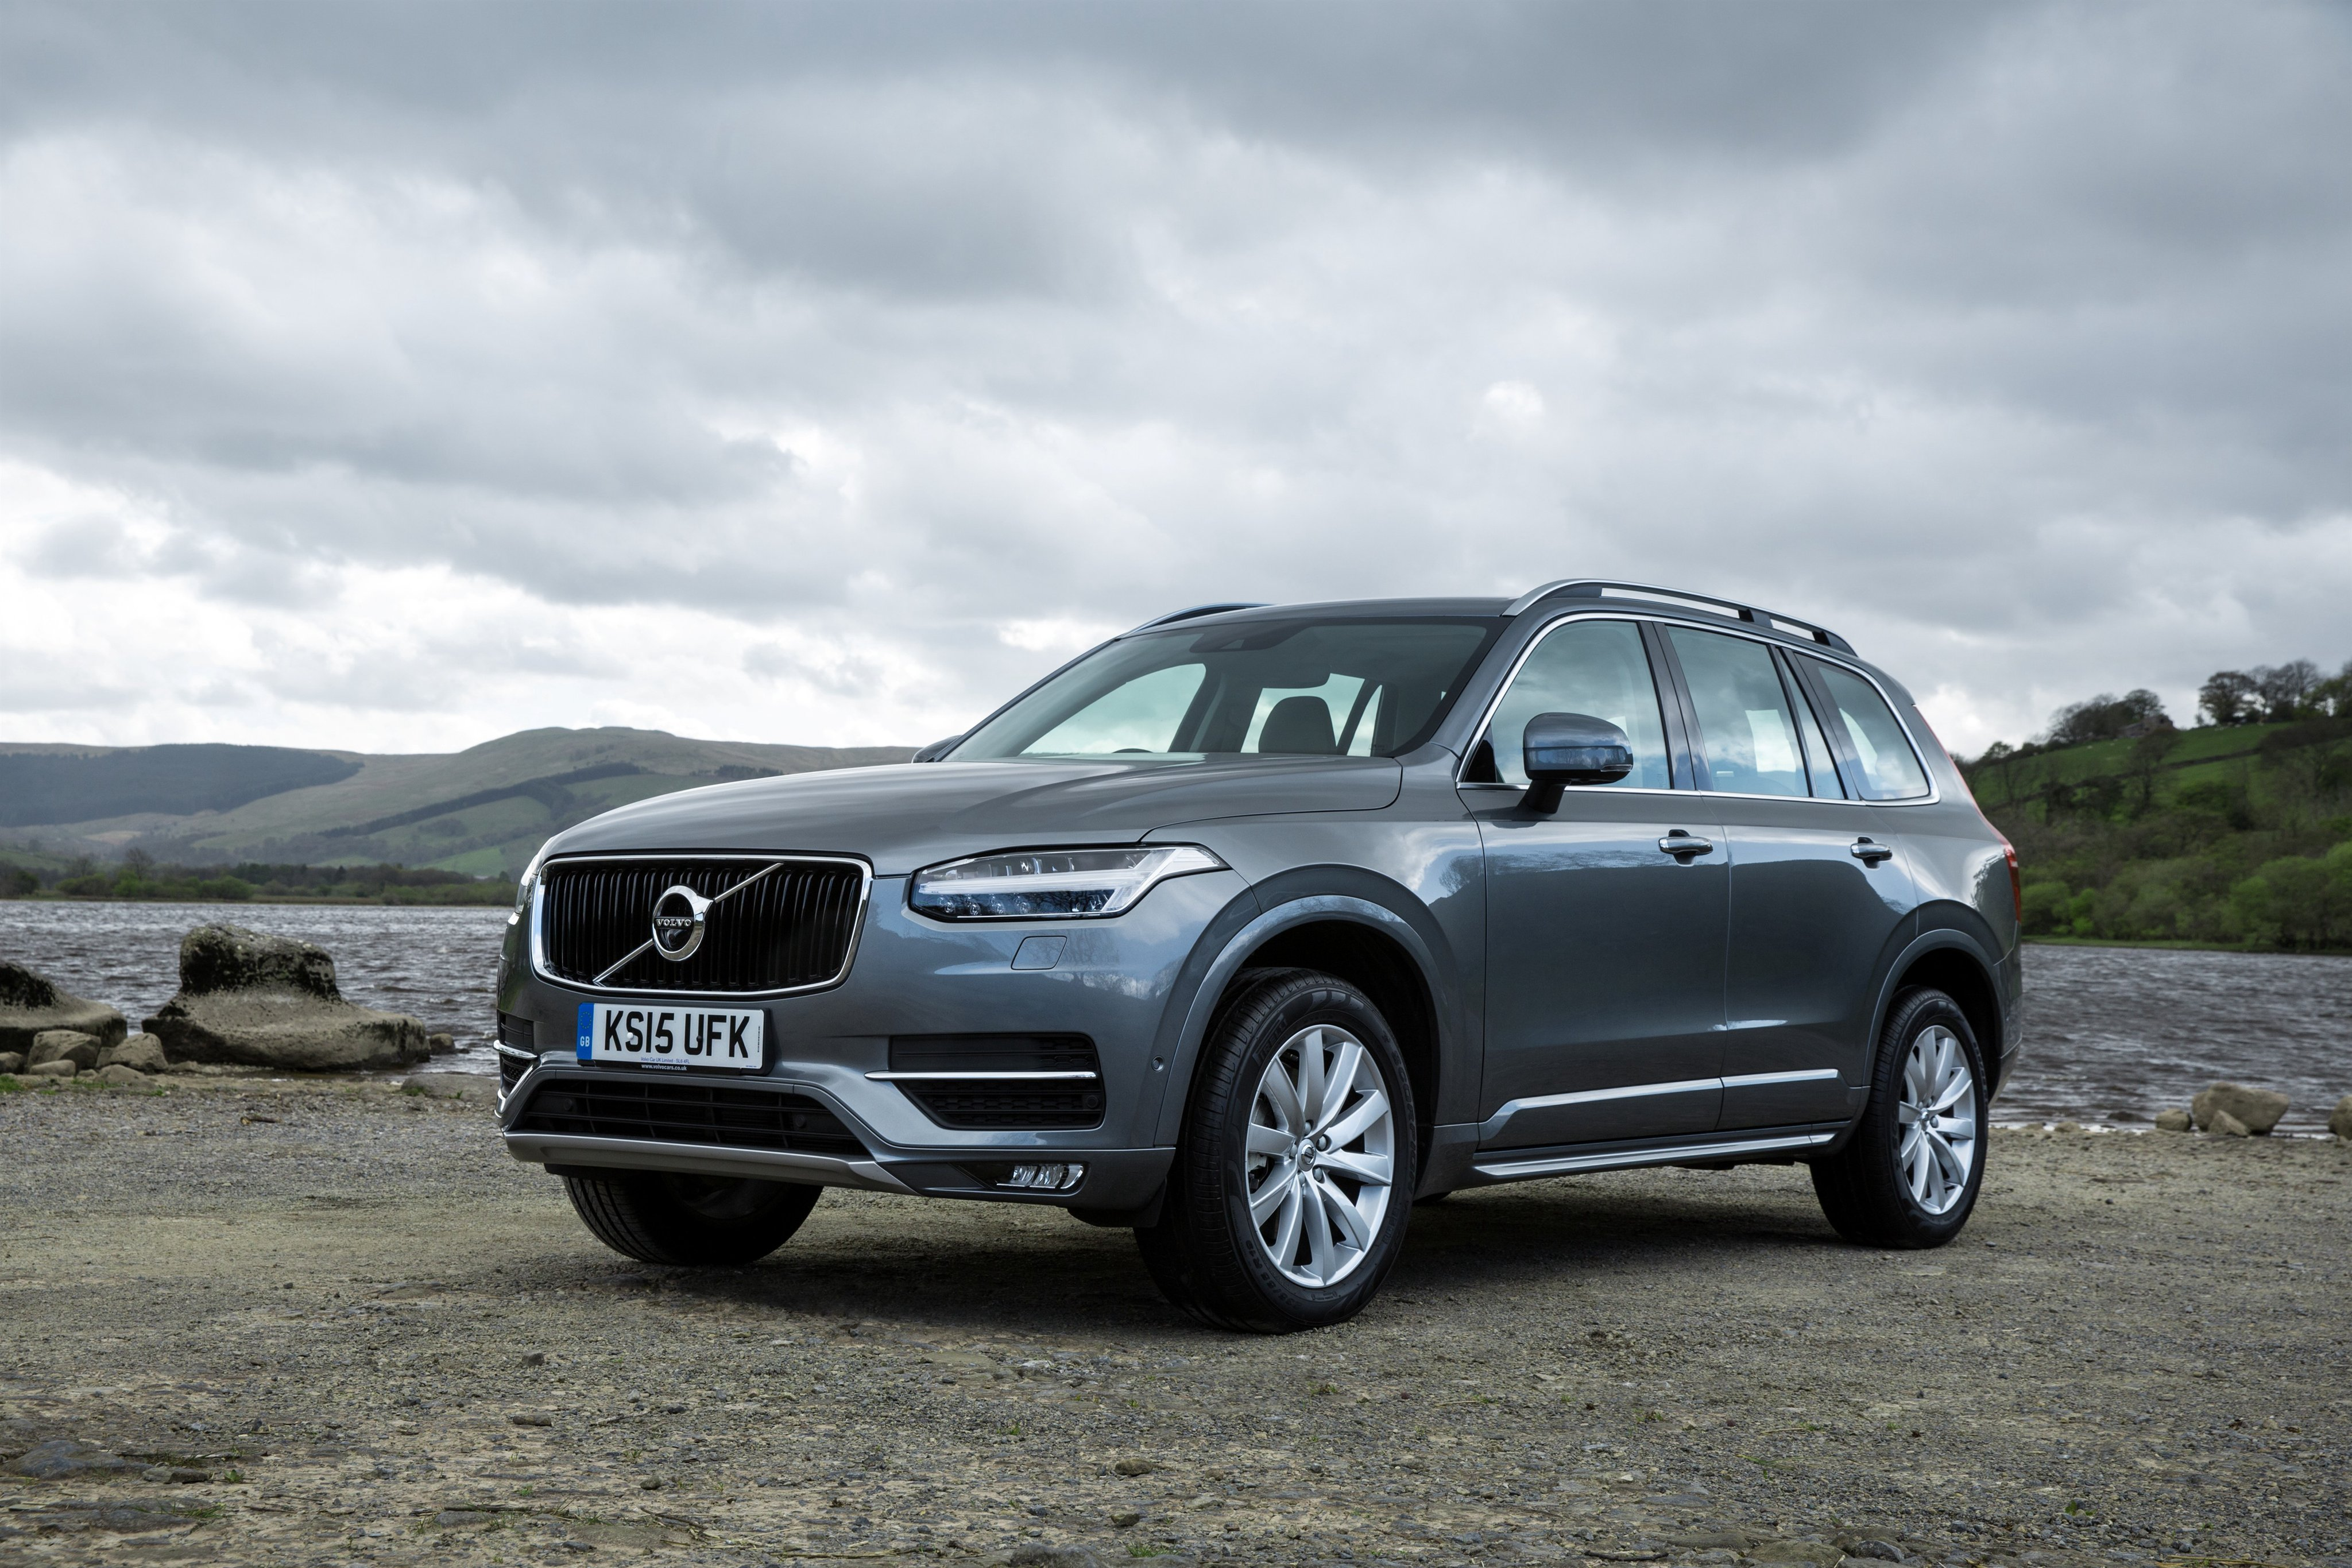 volvo xc90 d5 momentum uk spec cars suv 2015 wallpaper 4096x2731 718115 wallpaperup. Black Bedroom Furniture Sets. Home Design Ideas